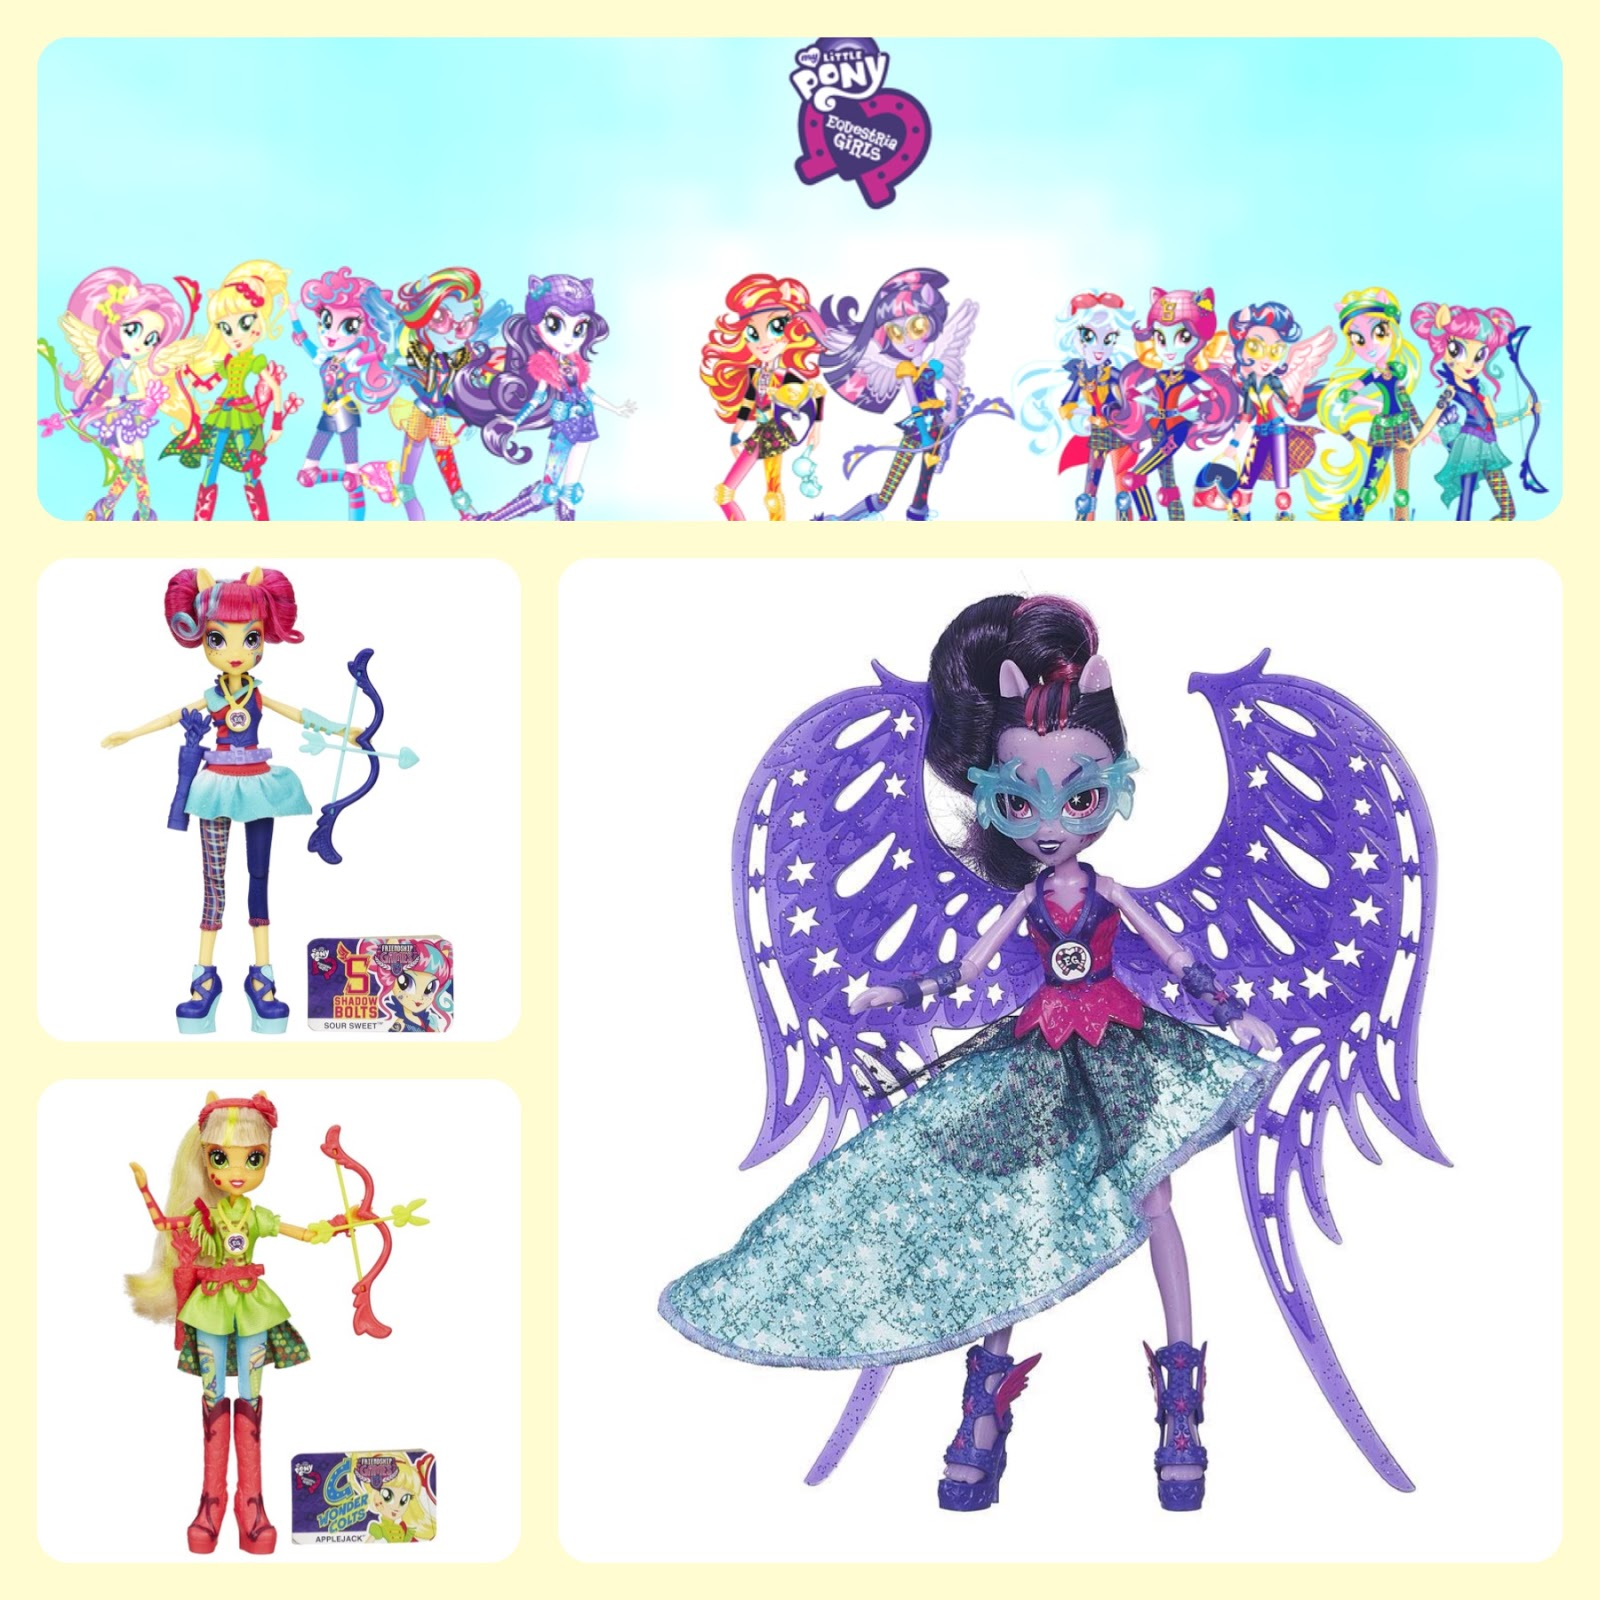 Santa List Equestria Girls Friendship Games Dolls